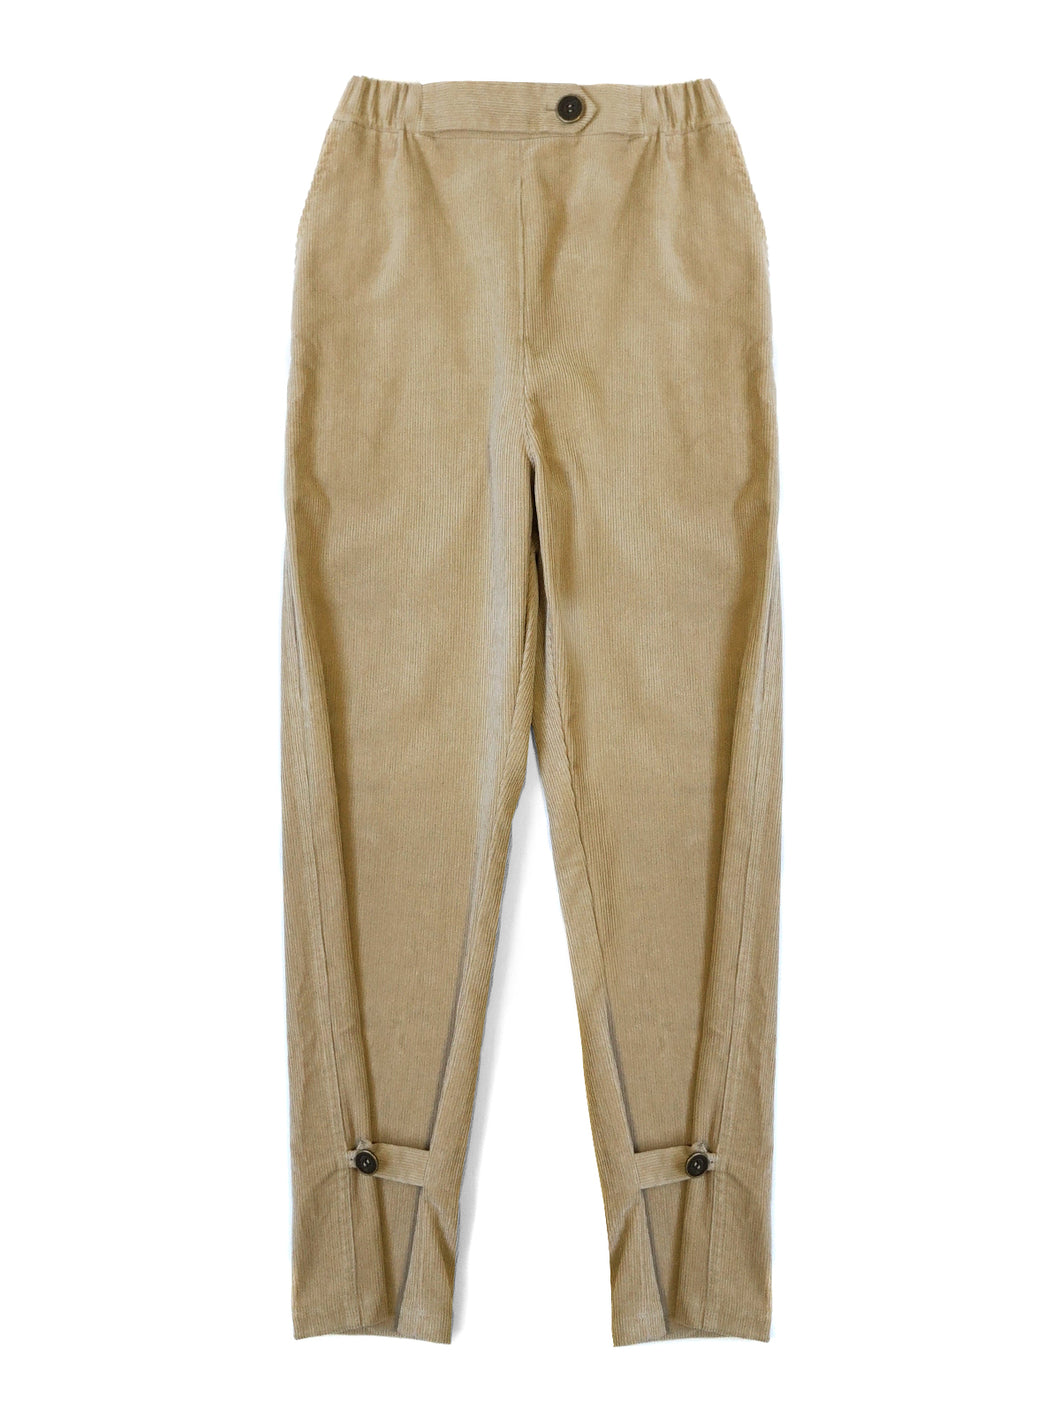 CORDUROY ESCAPE PANTS